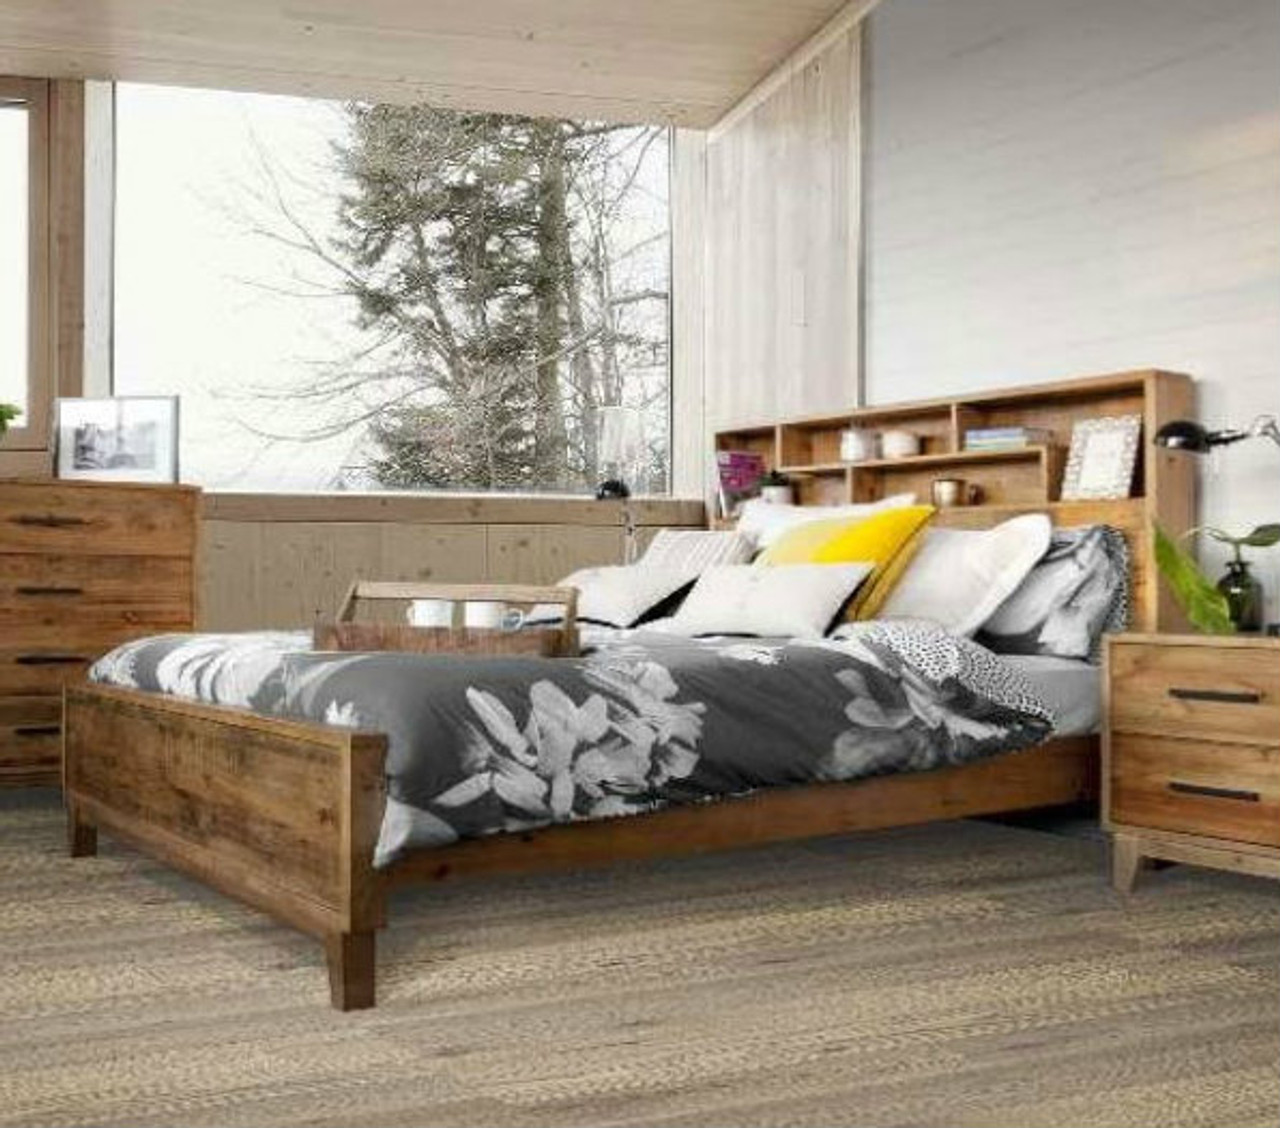 King Antarctica Bed With Bookcase Storage Headboard Rustic My Furniture Store Furniture And Bedding Super Store Australia